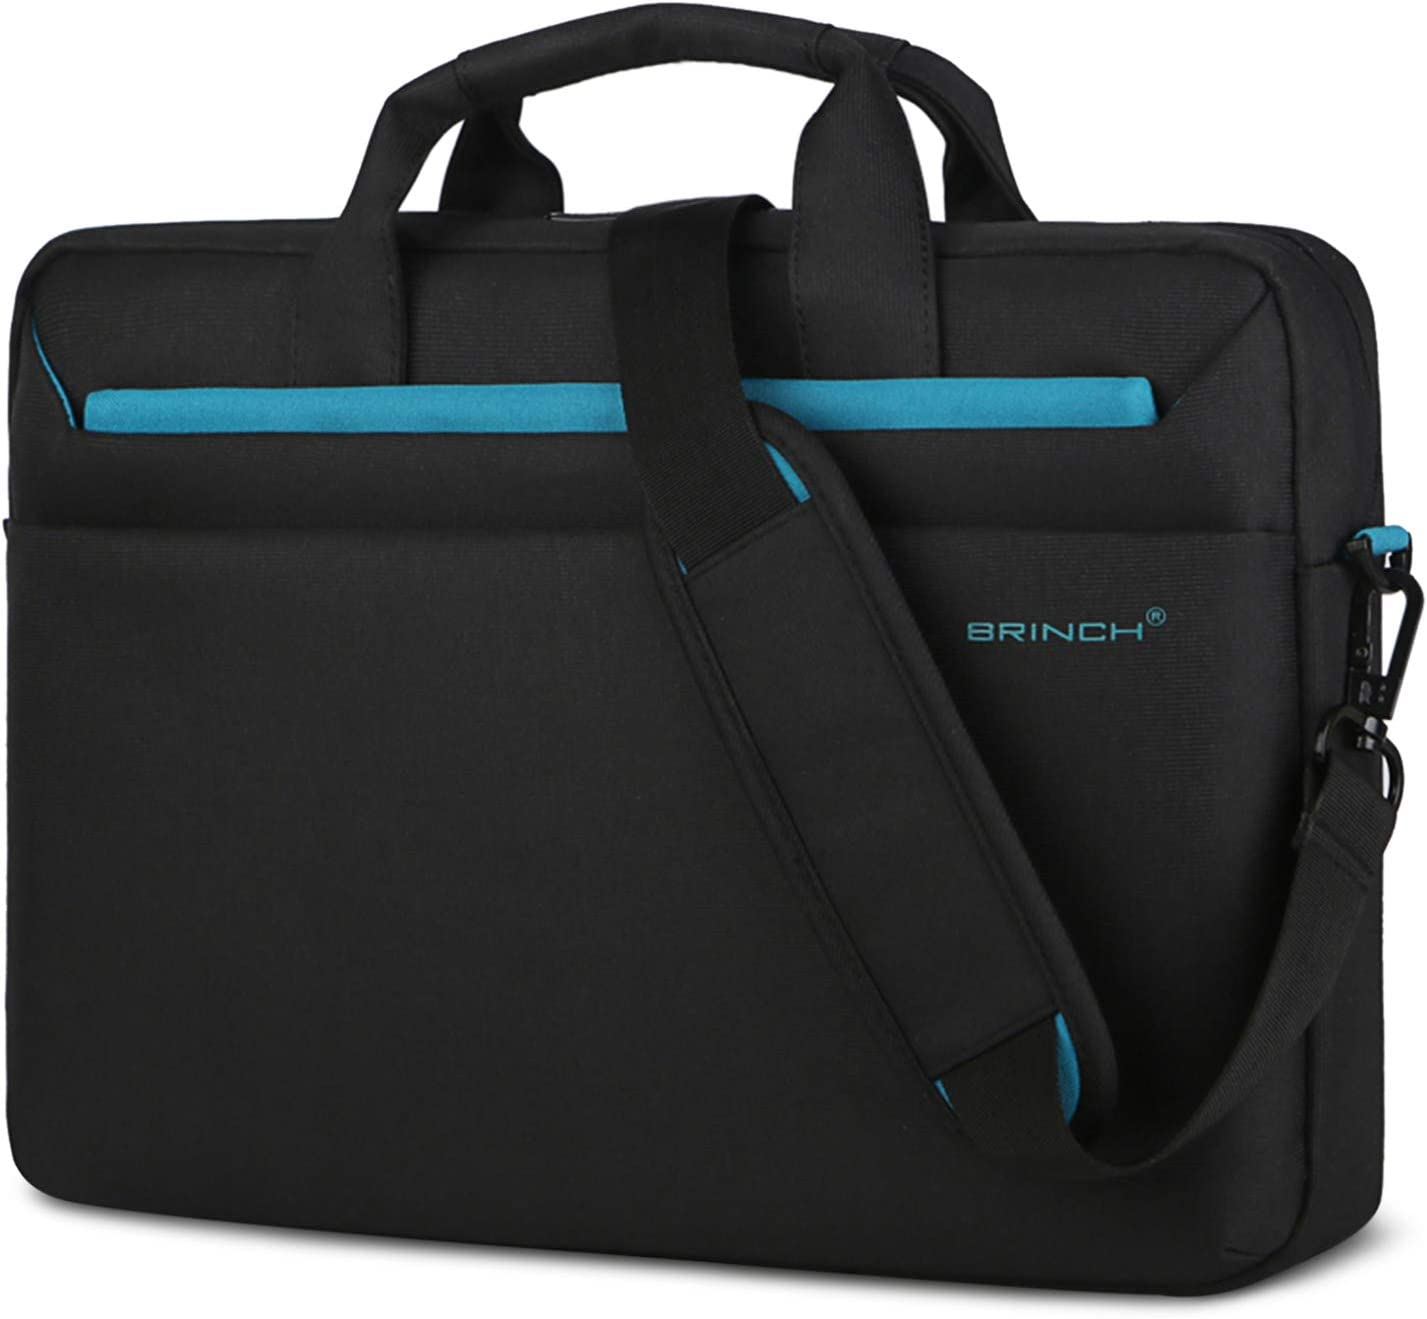 BRINCH 15.6 Inch Laptop Bag, Multi-Functional Laptop Case Bag with Handle Protective Carrying Case Business Shoulder Bag Compatible with MacBook Pro HP Dell Asus for Men Women,Black